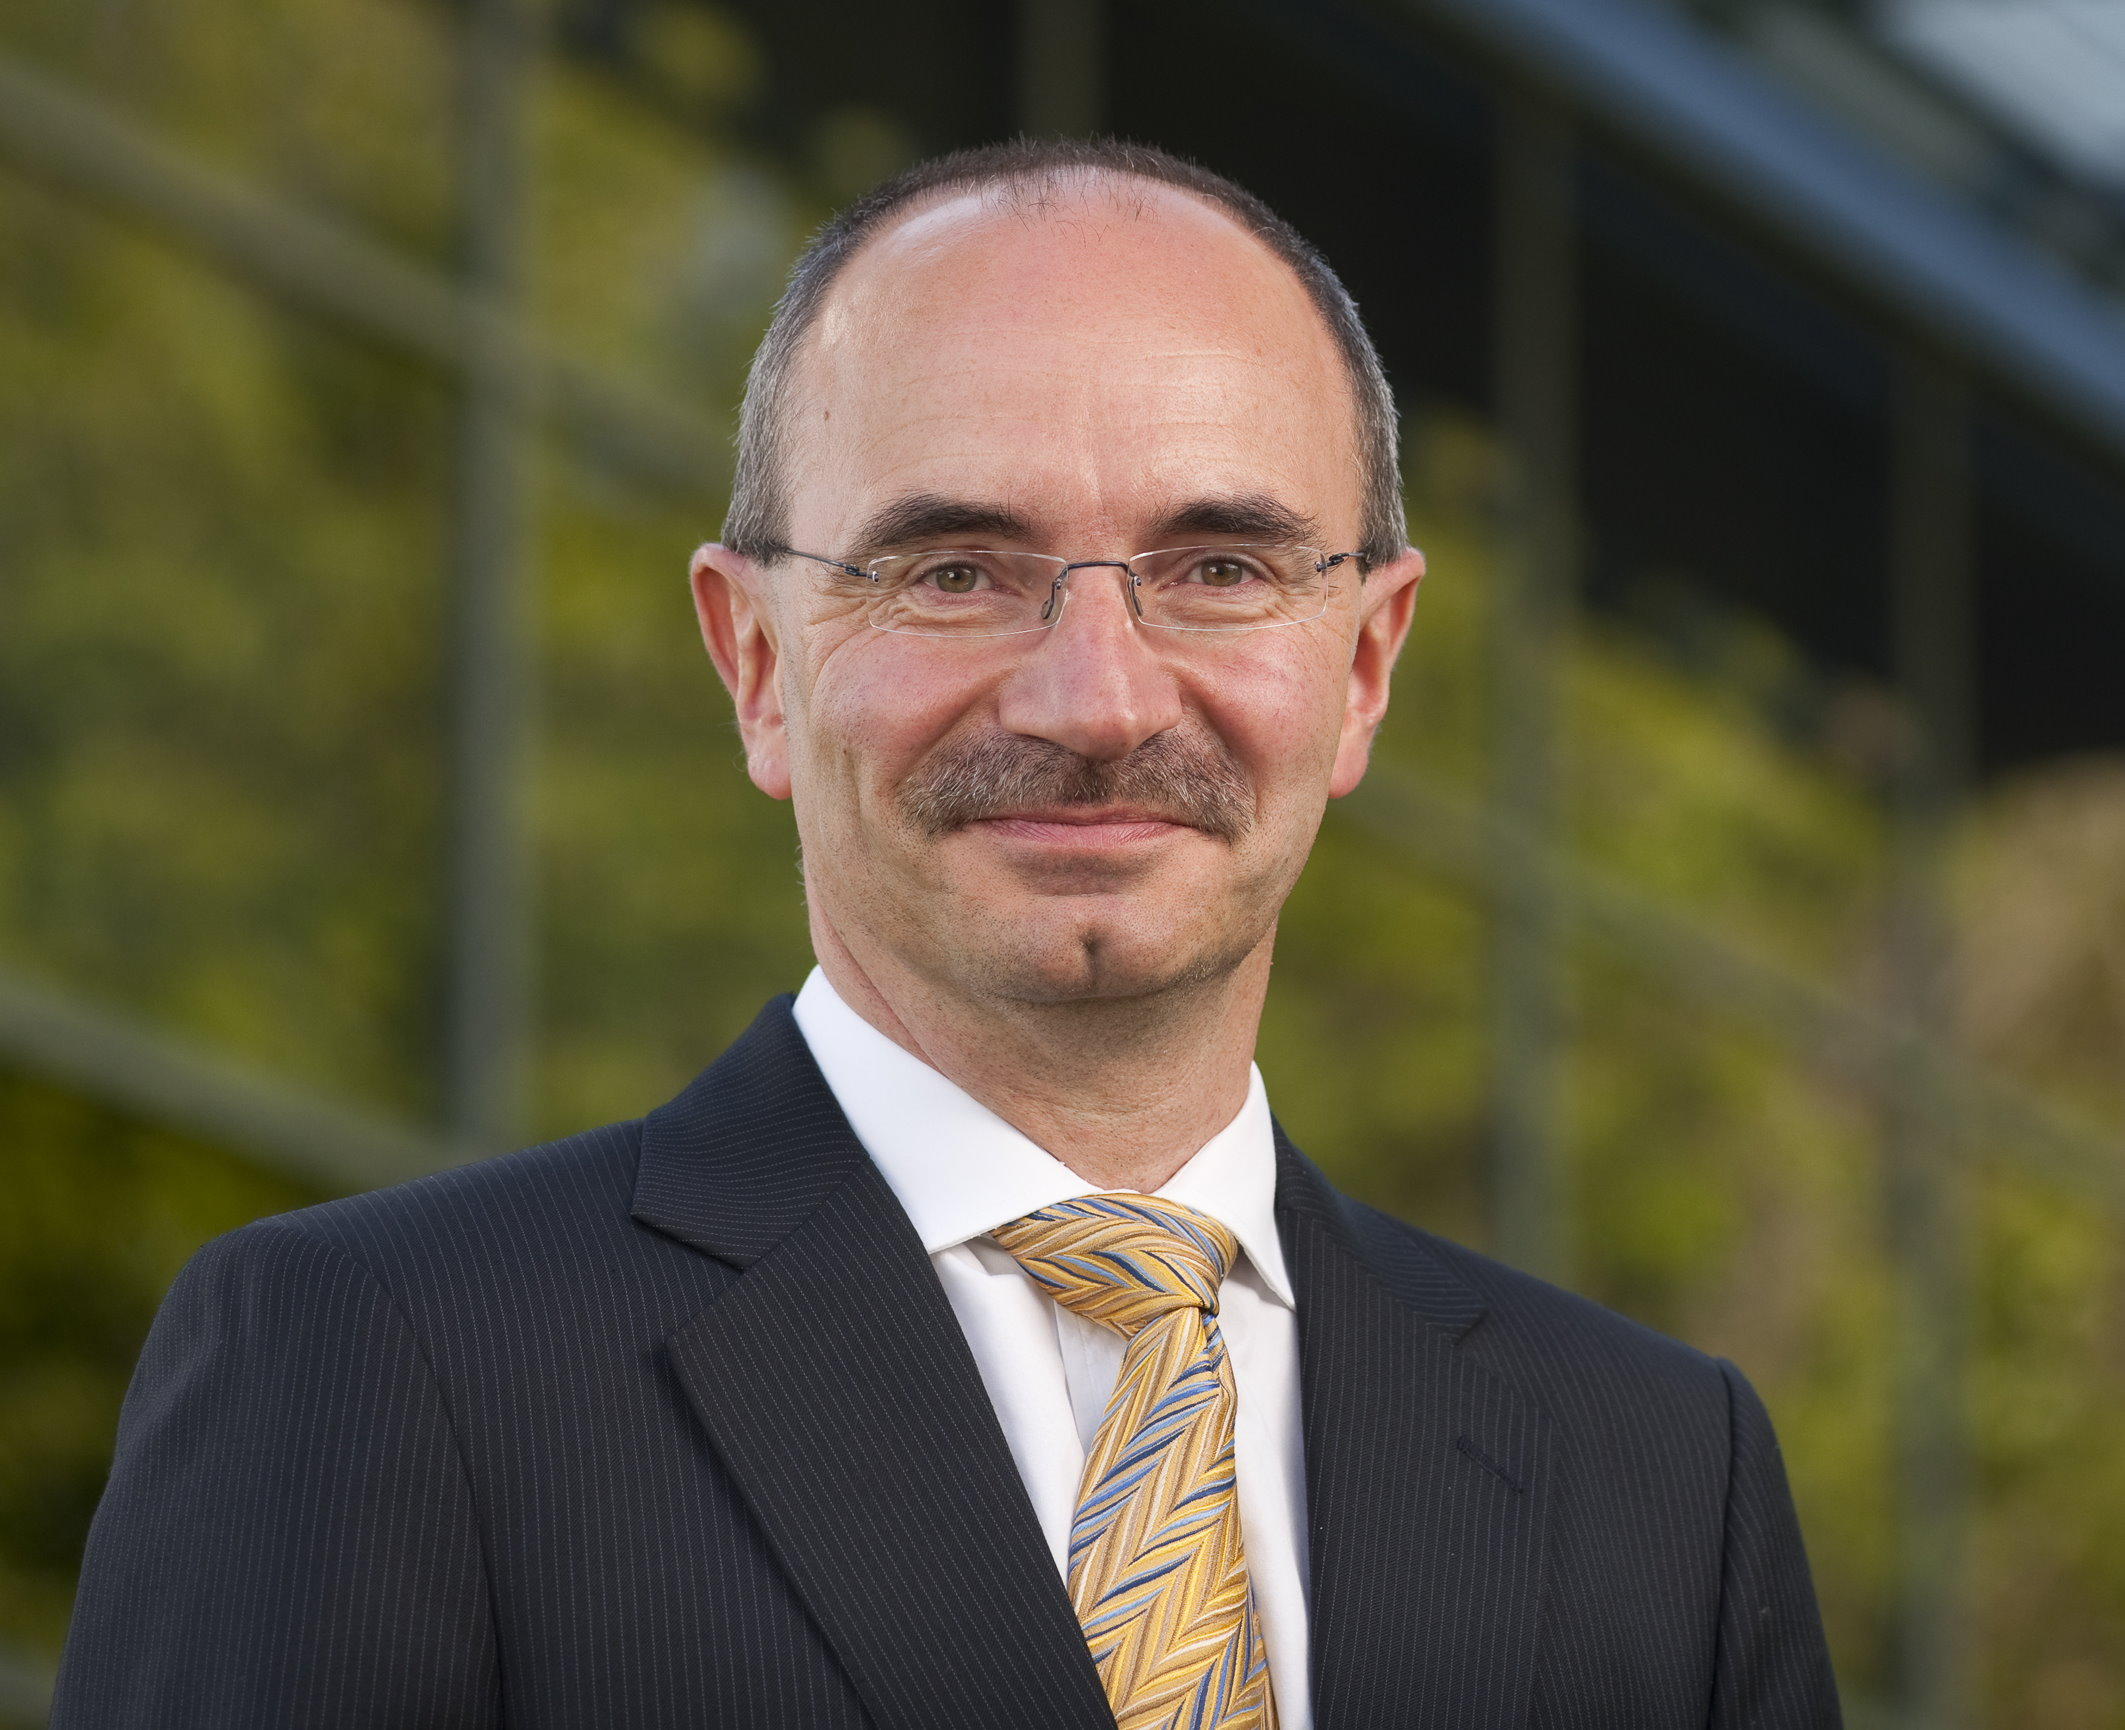 HVM Catapult CEO confirms retirement plans